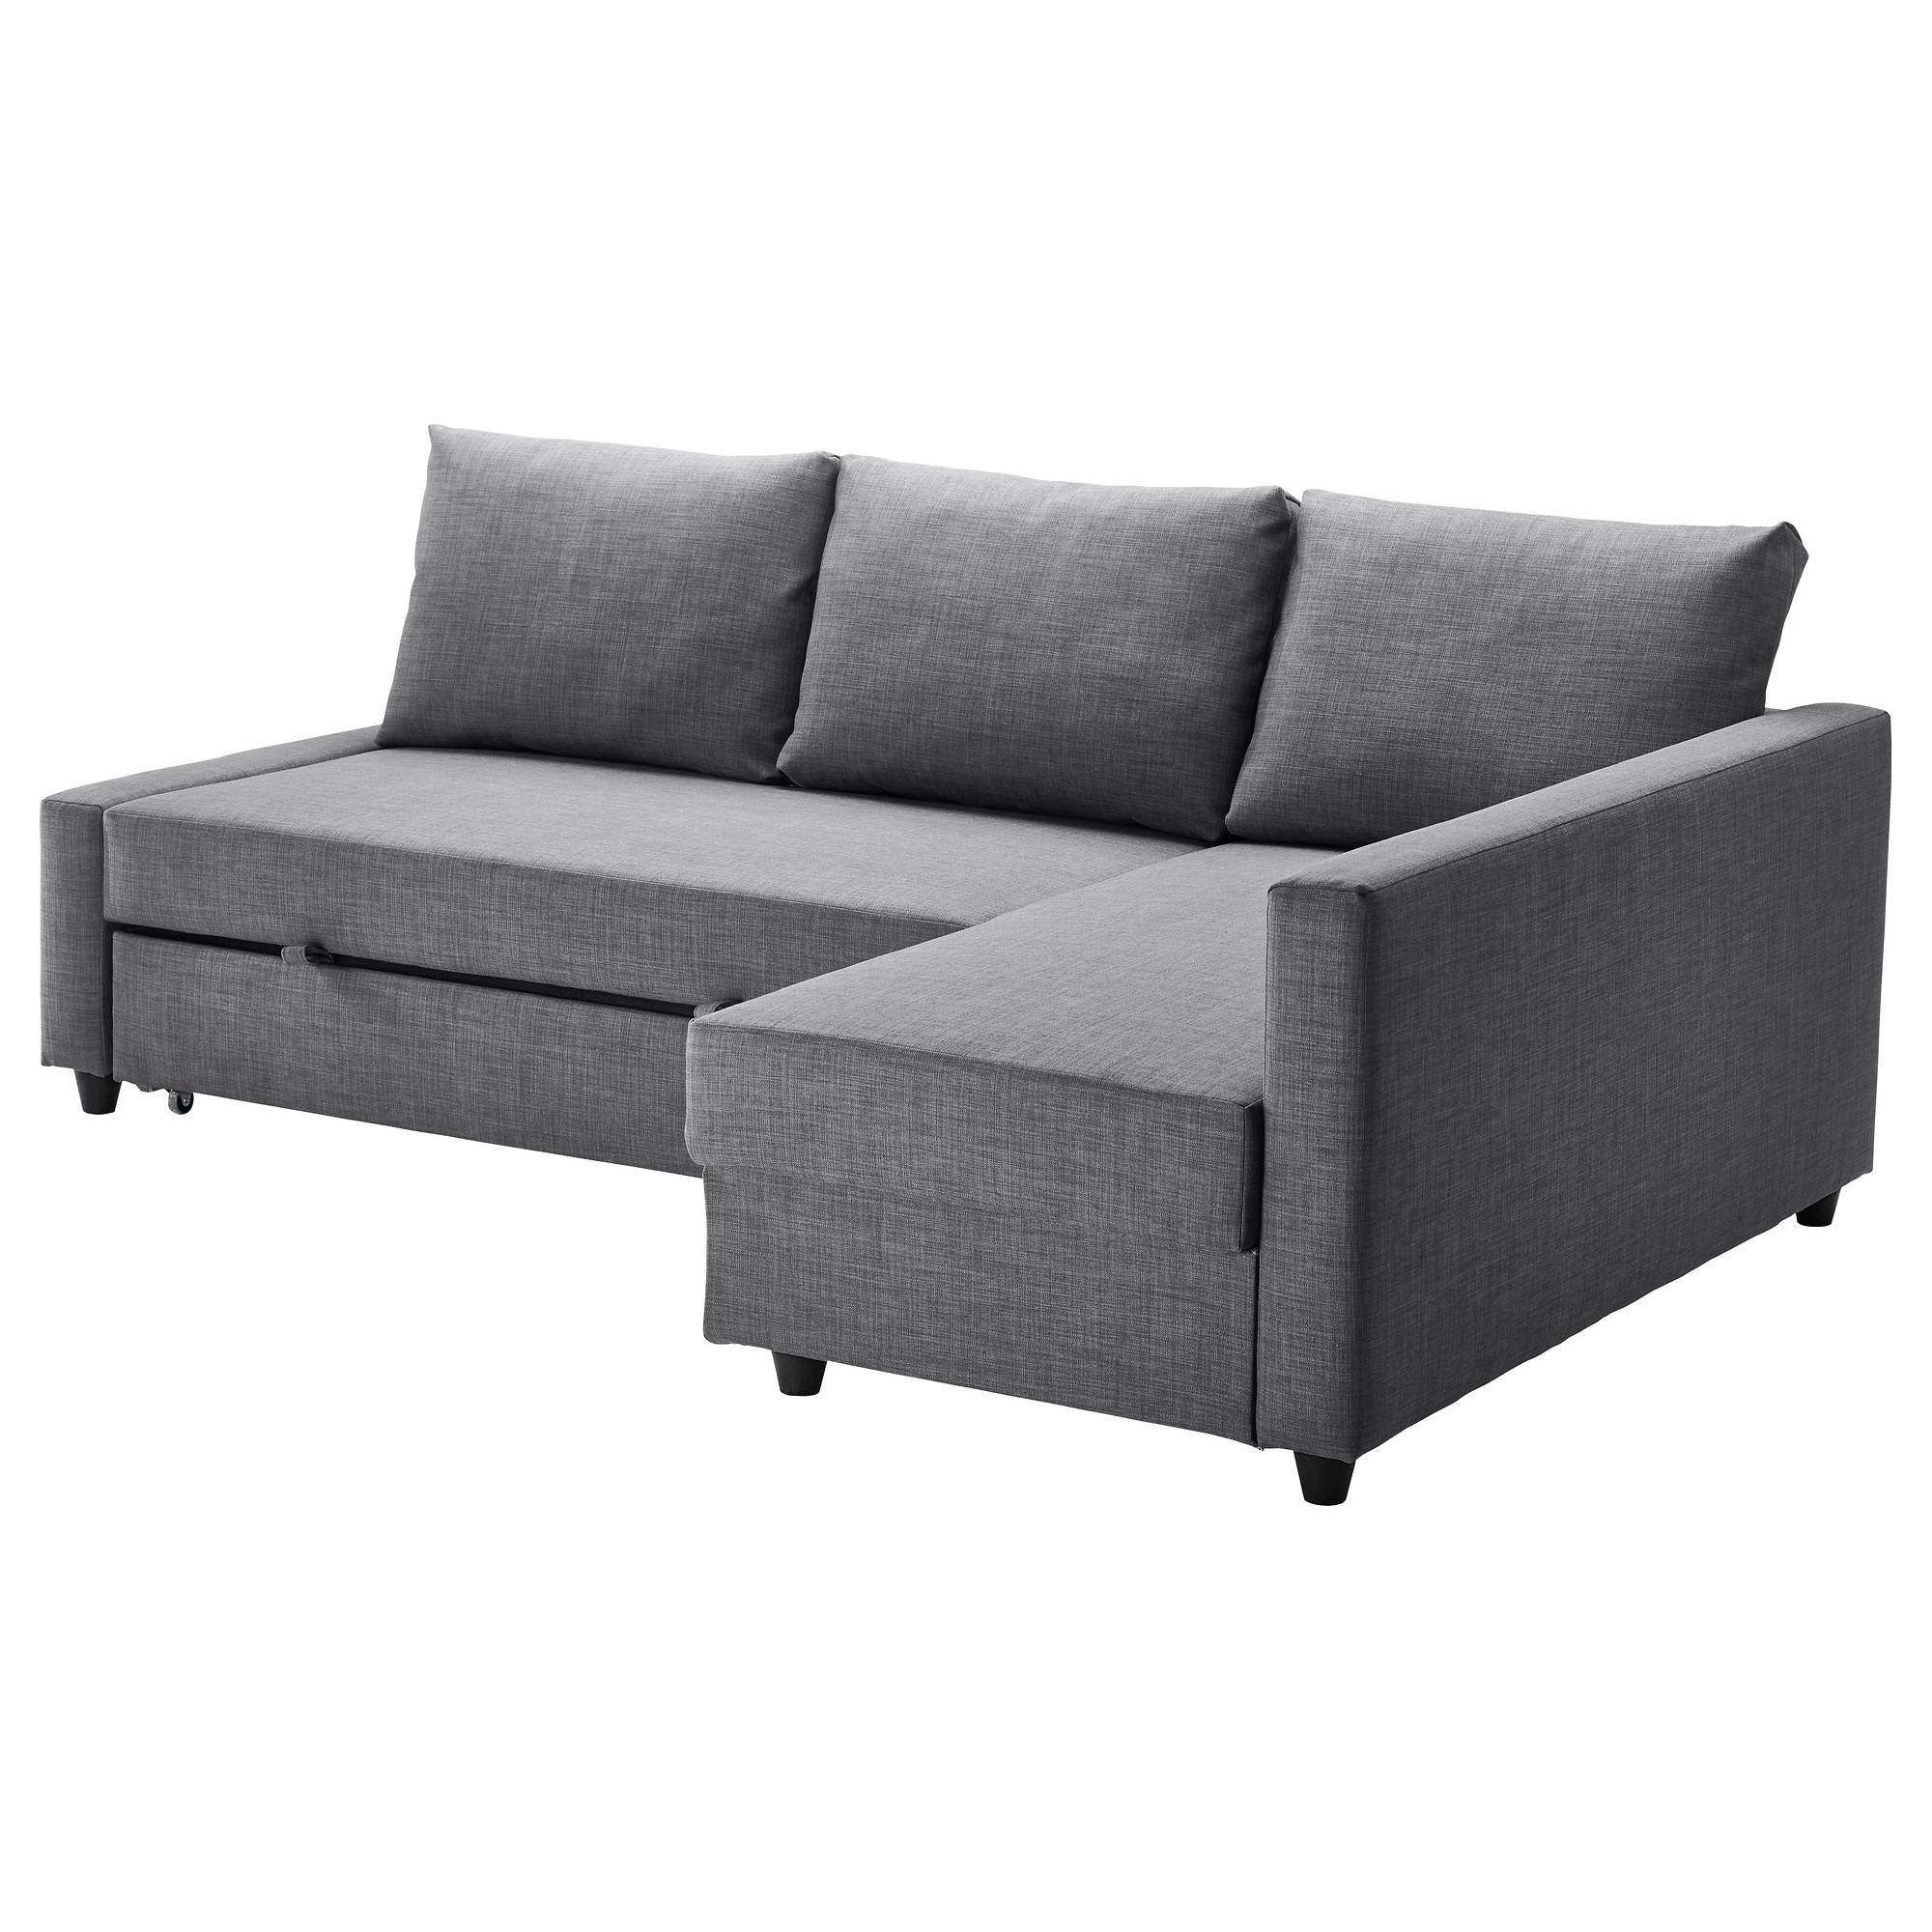 Friheten Sleeper Sectional,3 Seat W/storage - Skiftebo Dark Gray intended for Ikea Sofa Storage (Image 9 of 25)